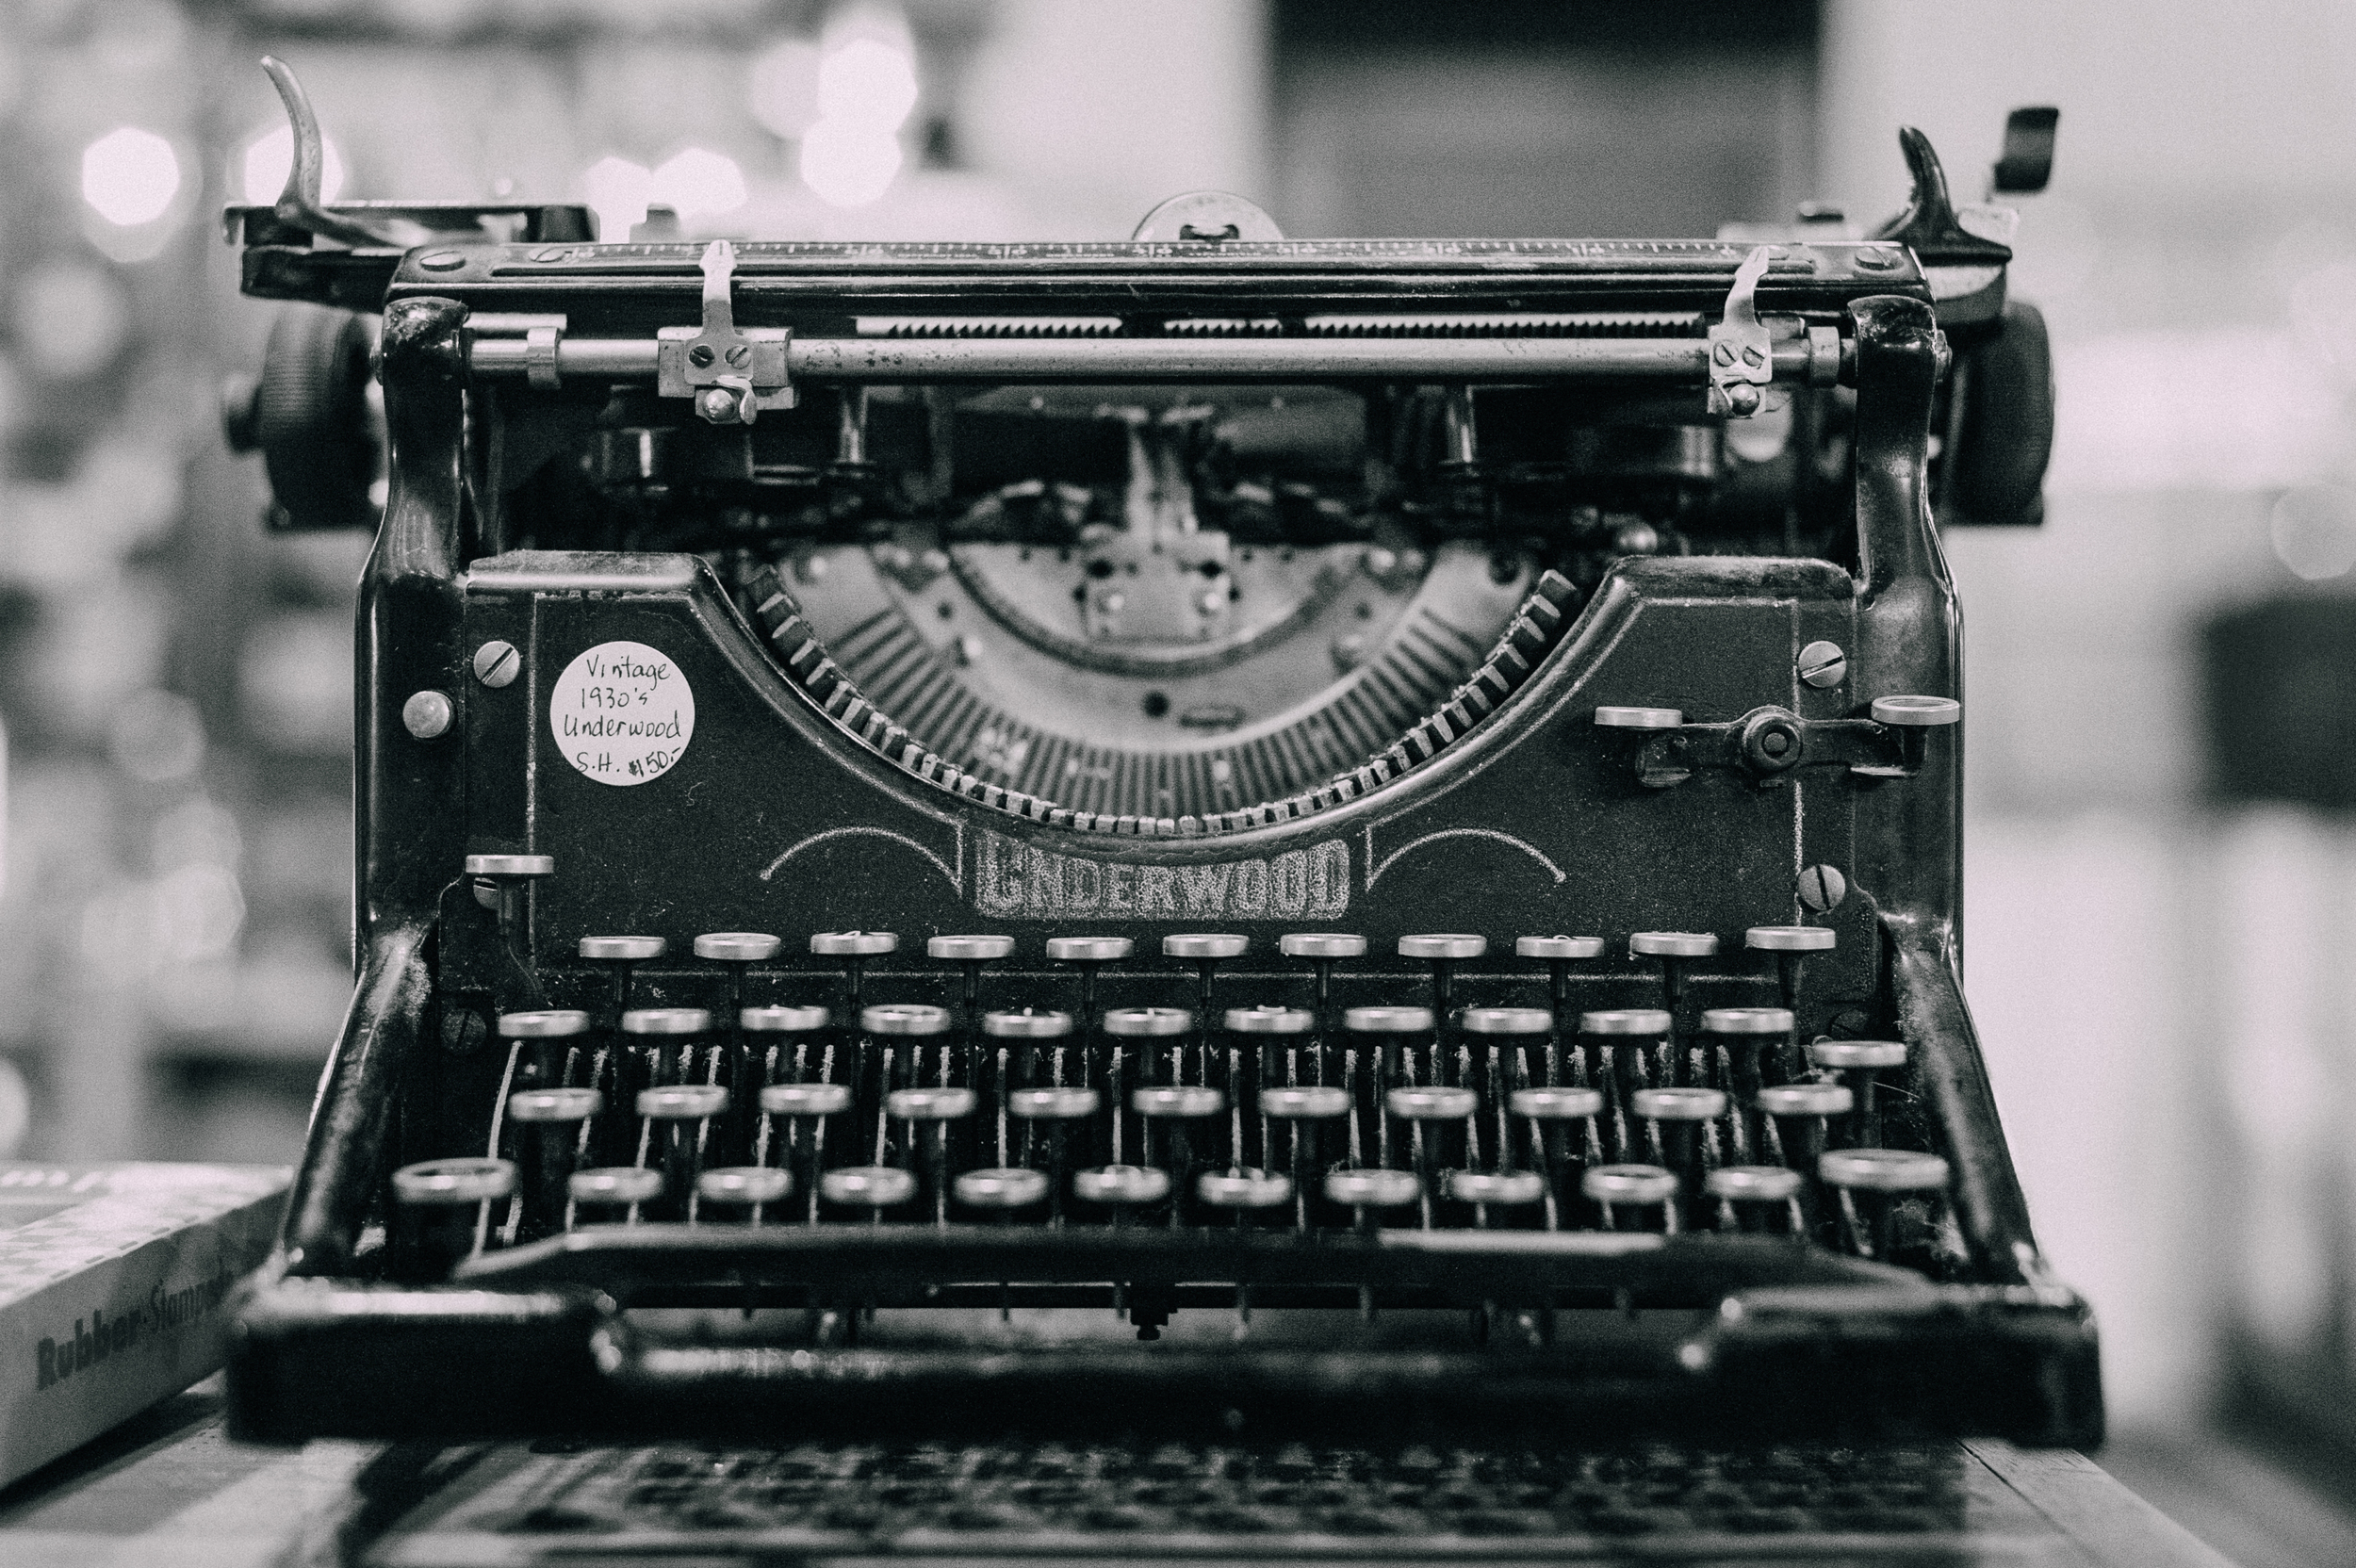 An antique typewriter. You know, those things that you'd press the keys down a quarter mile upon for them to type?